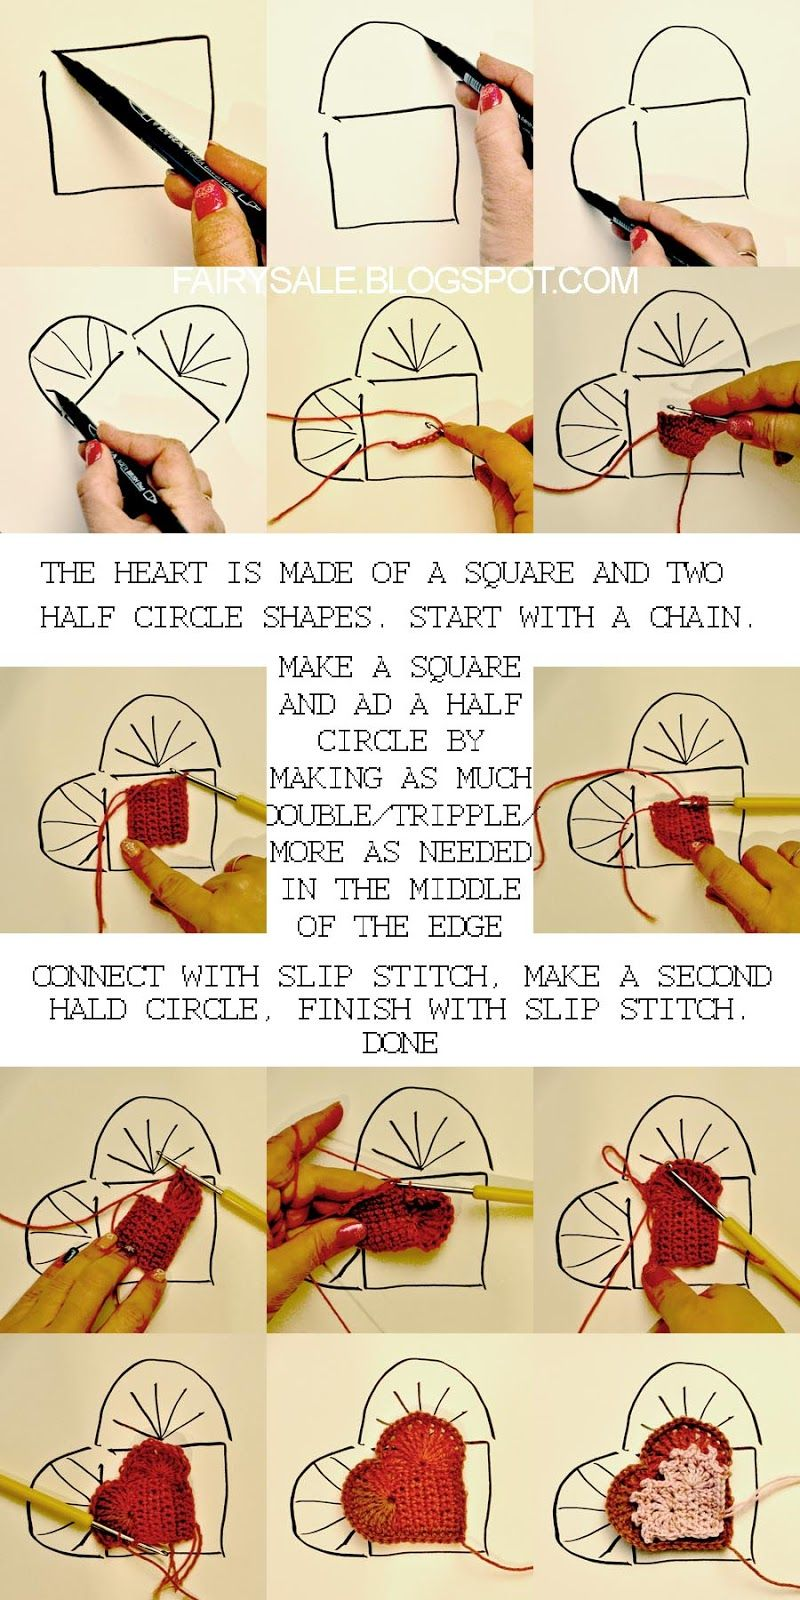 fairysale-stamps: Tutorial for crochet a heart shape without counting stitches